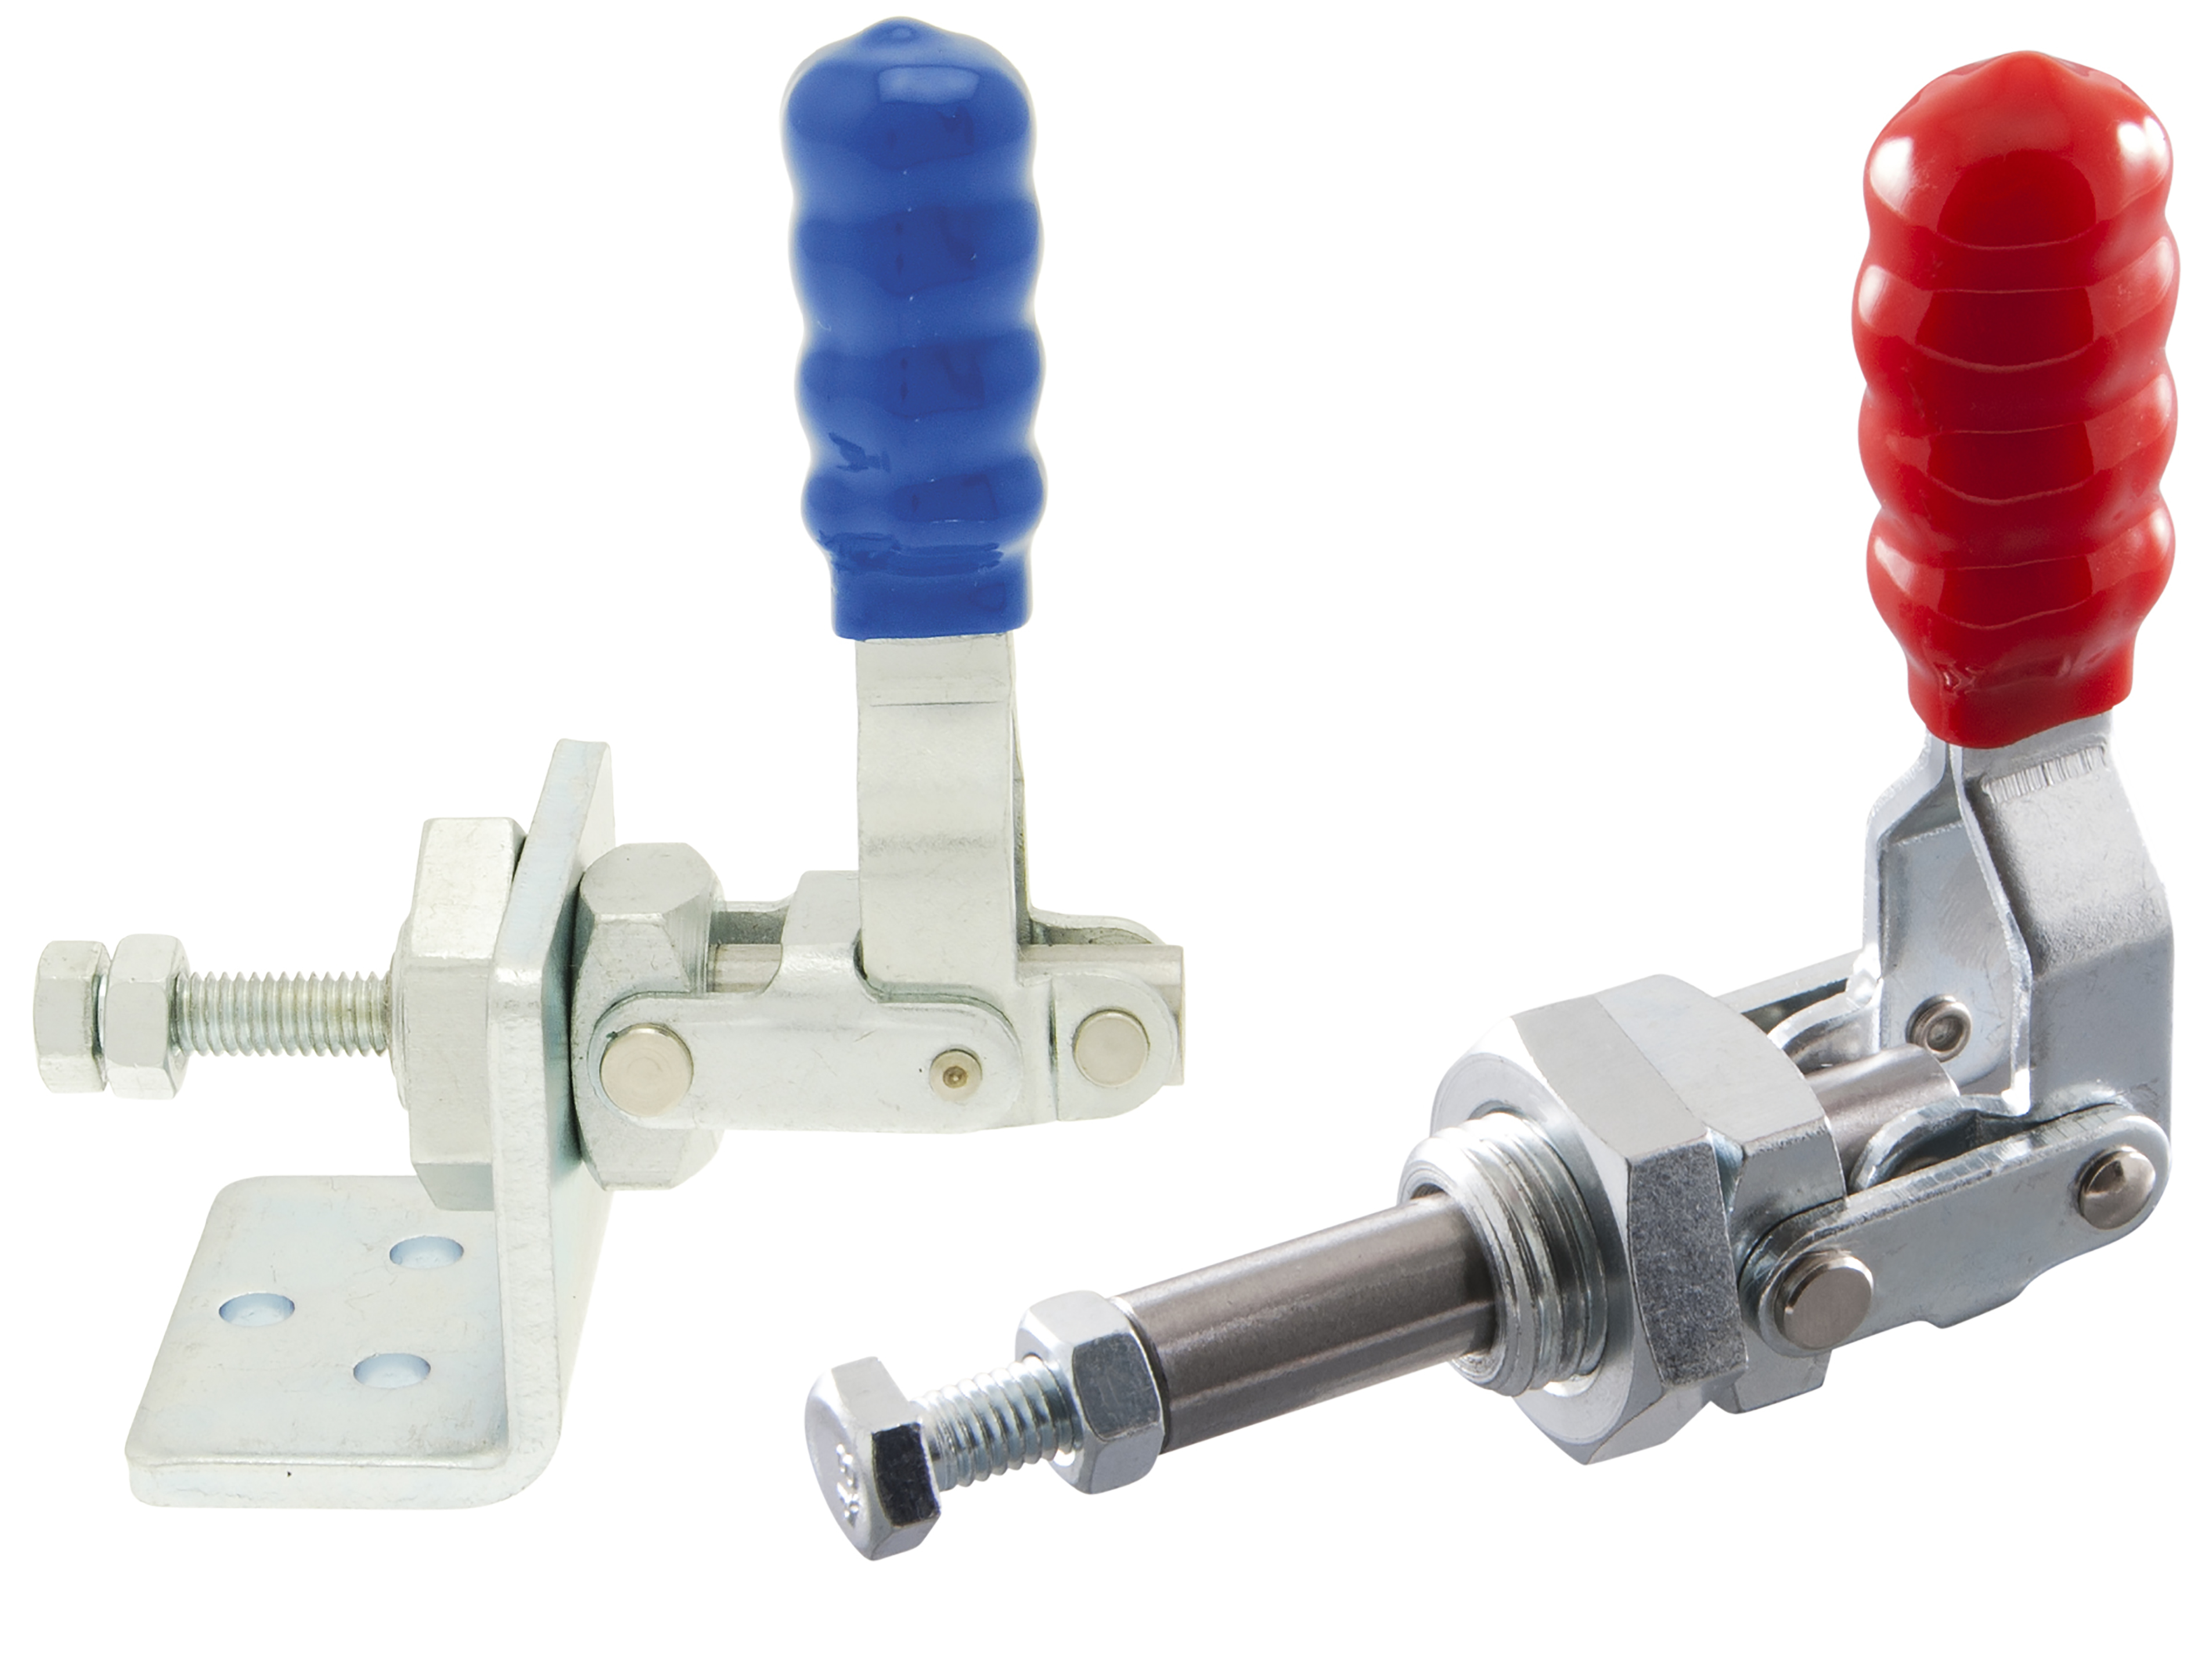 WDS extends range of toggle clamps with new sizes and styles